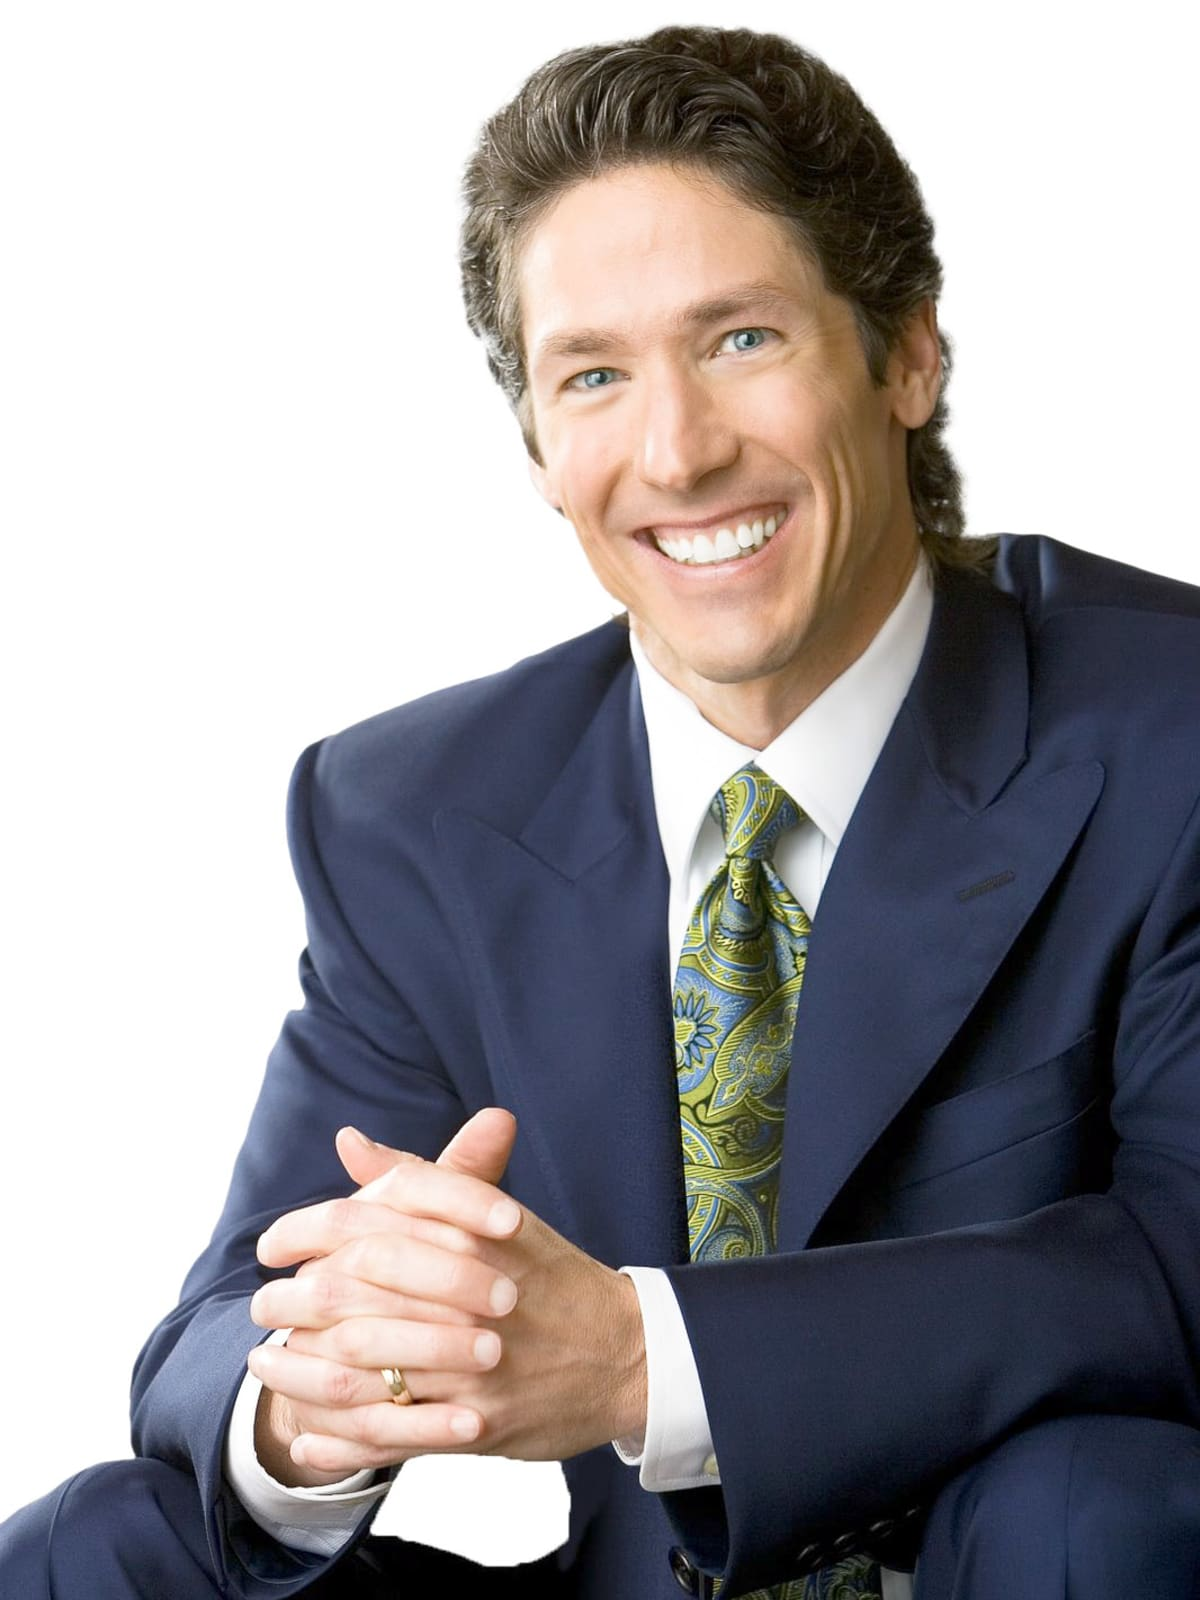 Five things we didn't know about Joel Osteen - CultureMap Houston